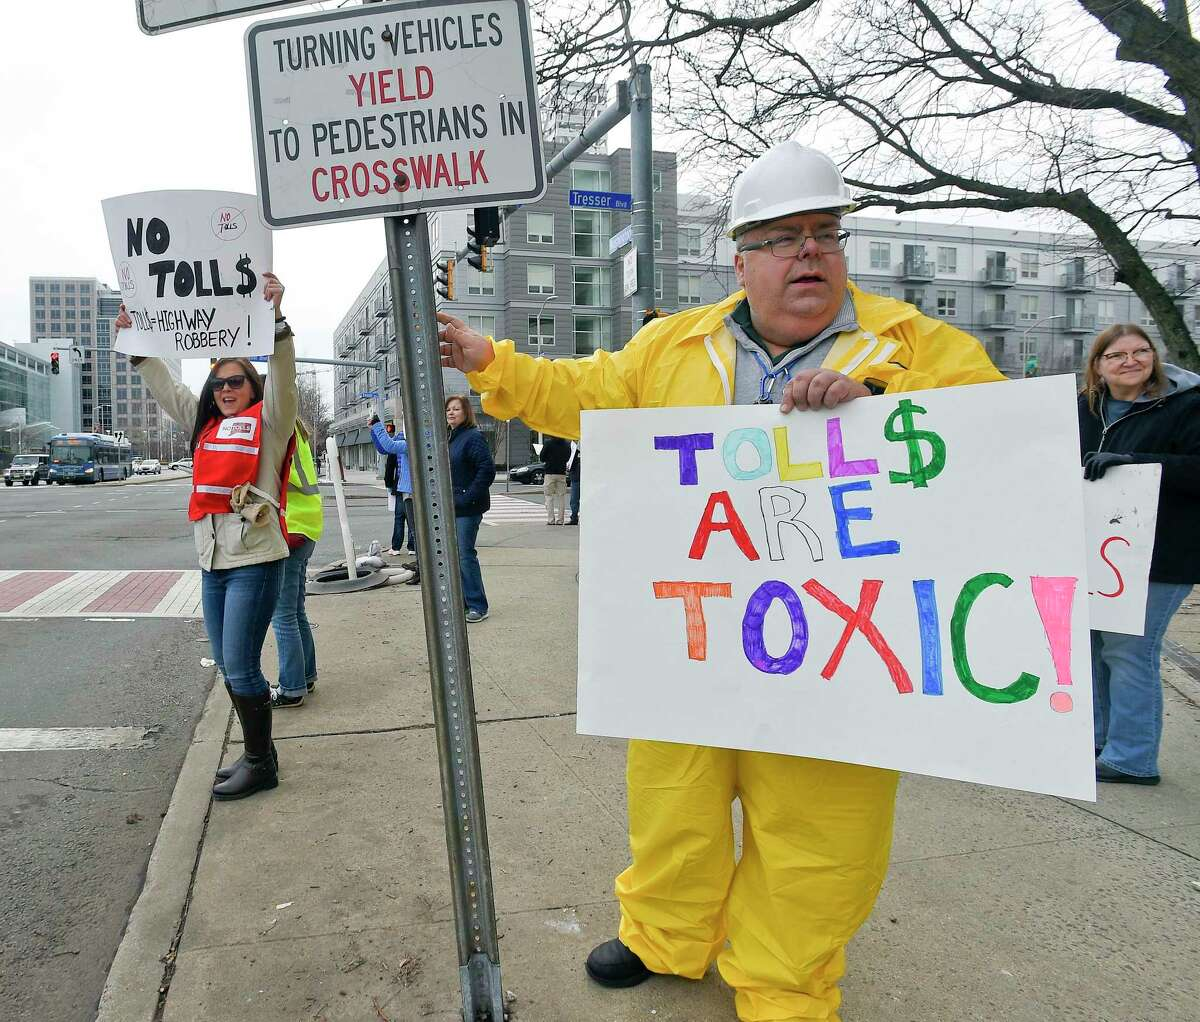 At right, Mike Johnson of New Canaan joins with others from the anti-toll group No Tolls CT, as they stage a protest in front of the Government Center on Feb. 23 in Stamford, Connecticut.